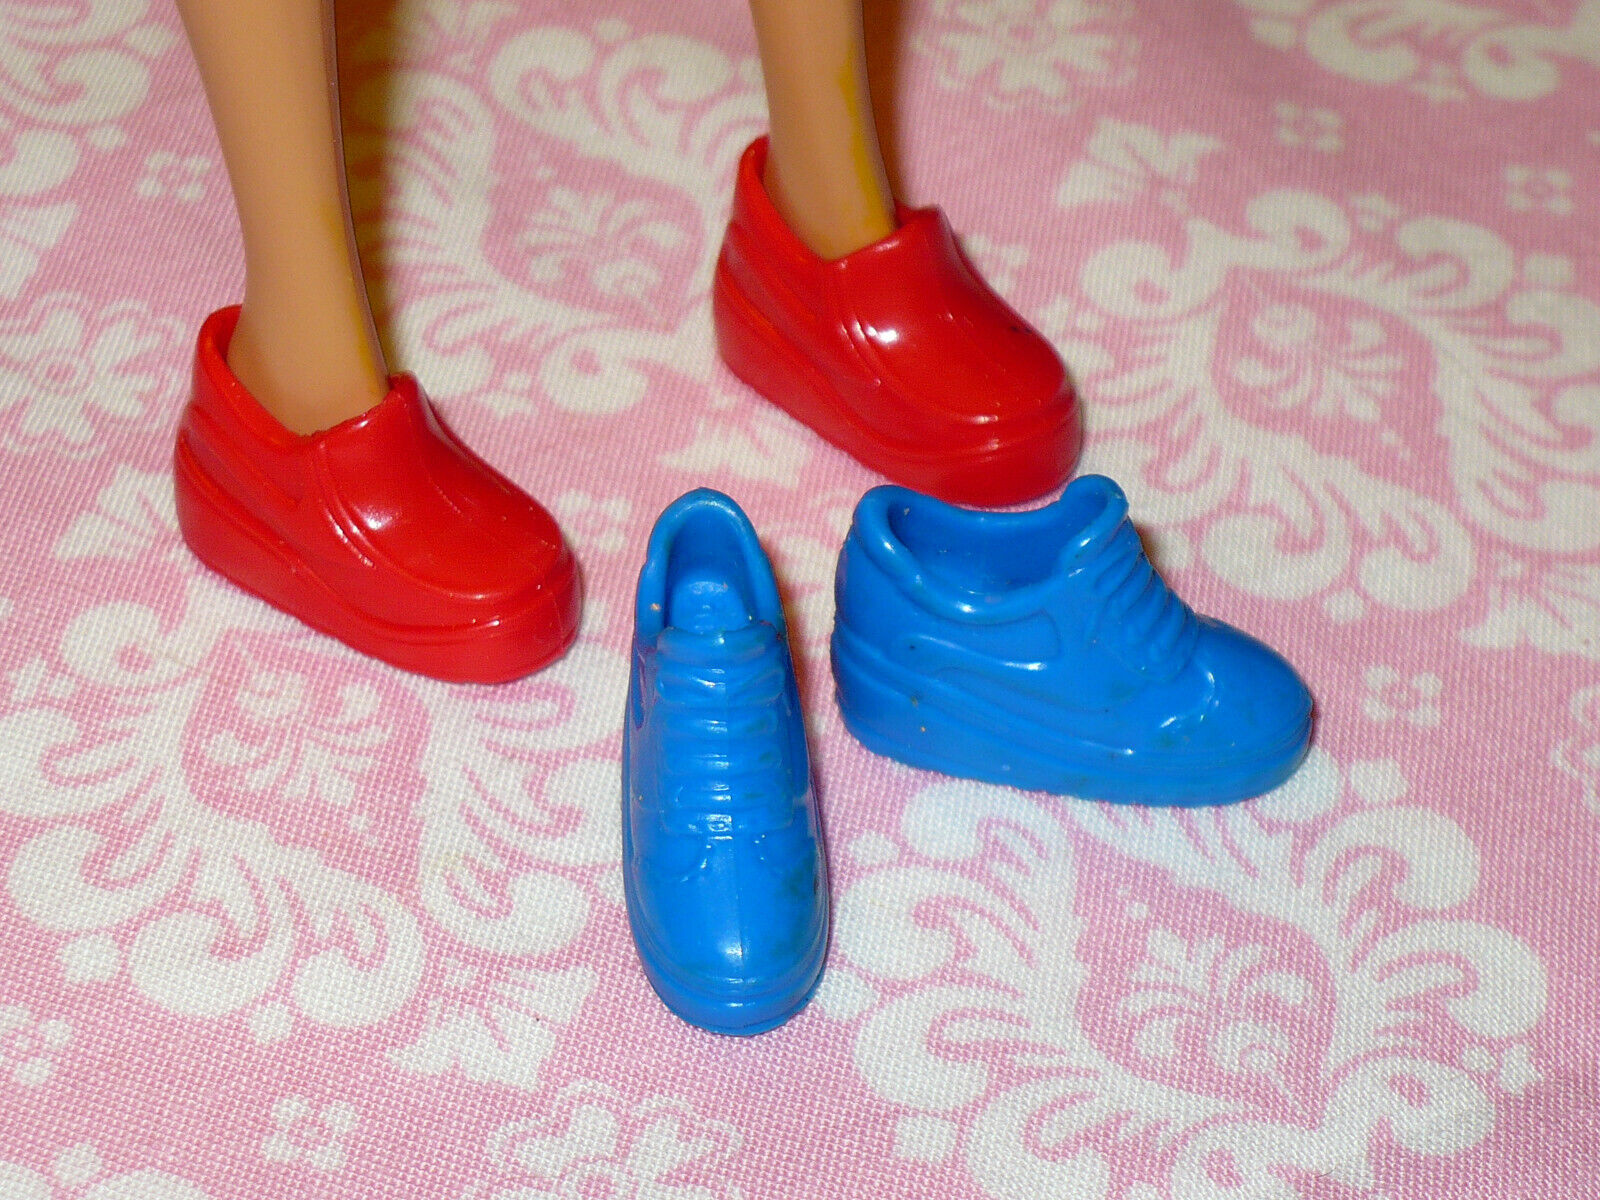 Mattel Barbie Doll Shoes FASHIONISTAS GENERATION GIRL 2 Prs SNEAKERS Loafer - $11.99